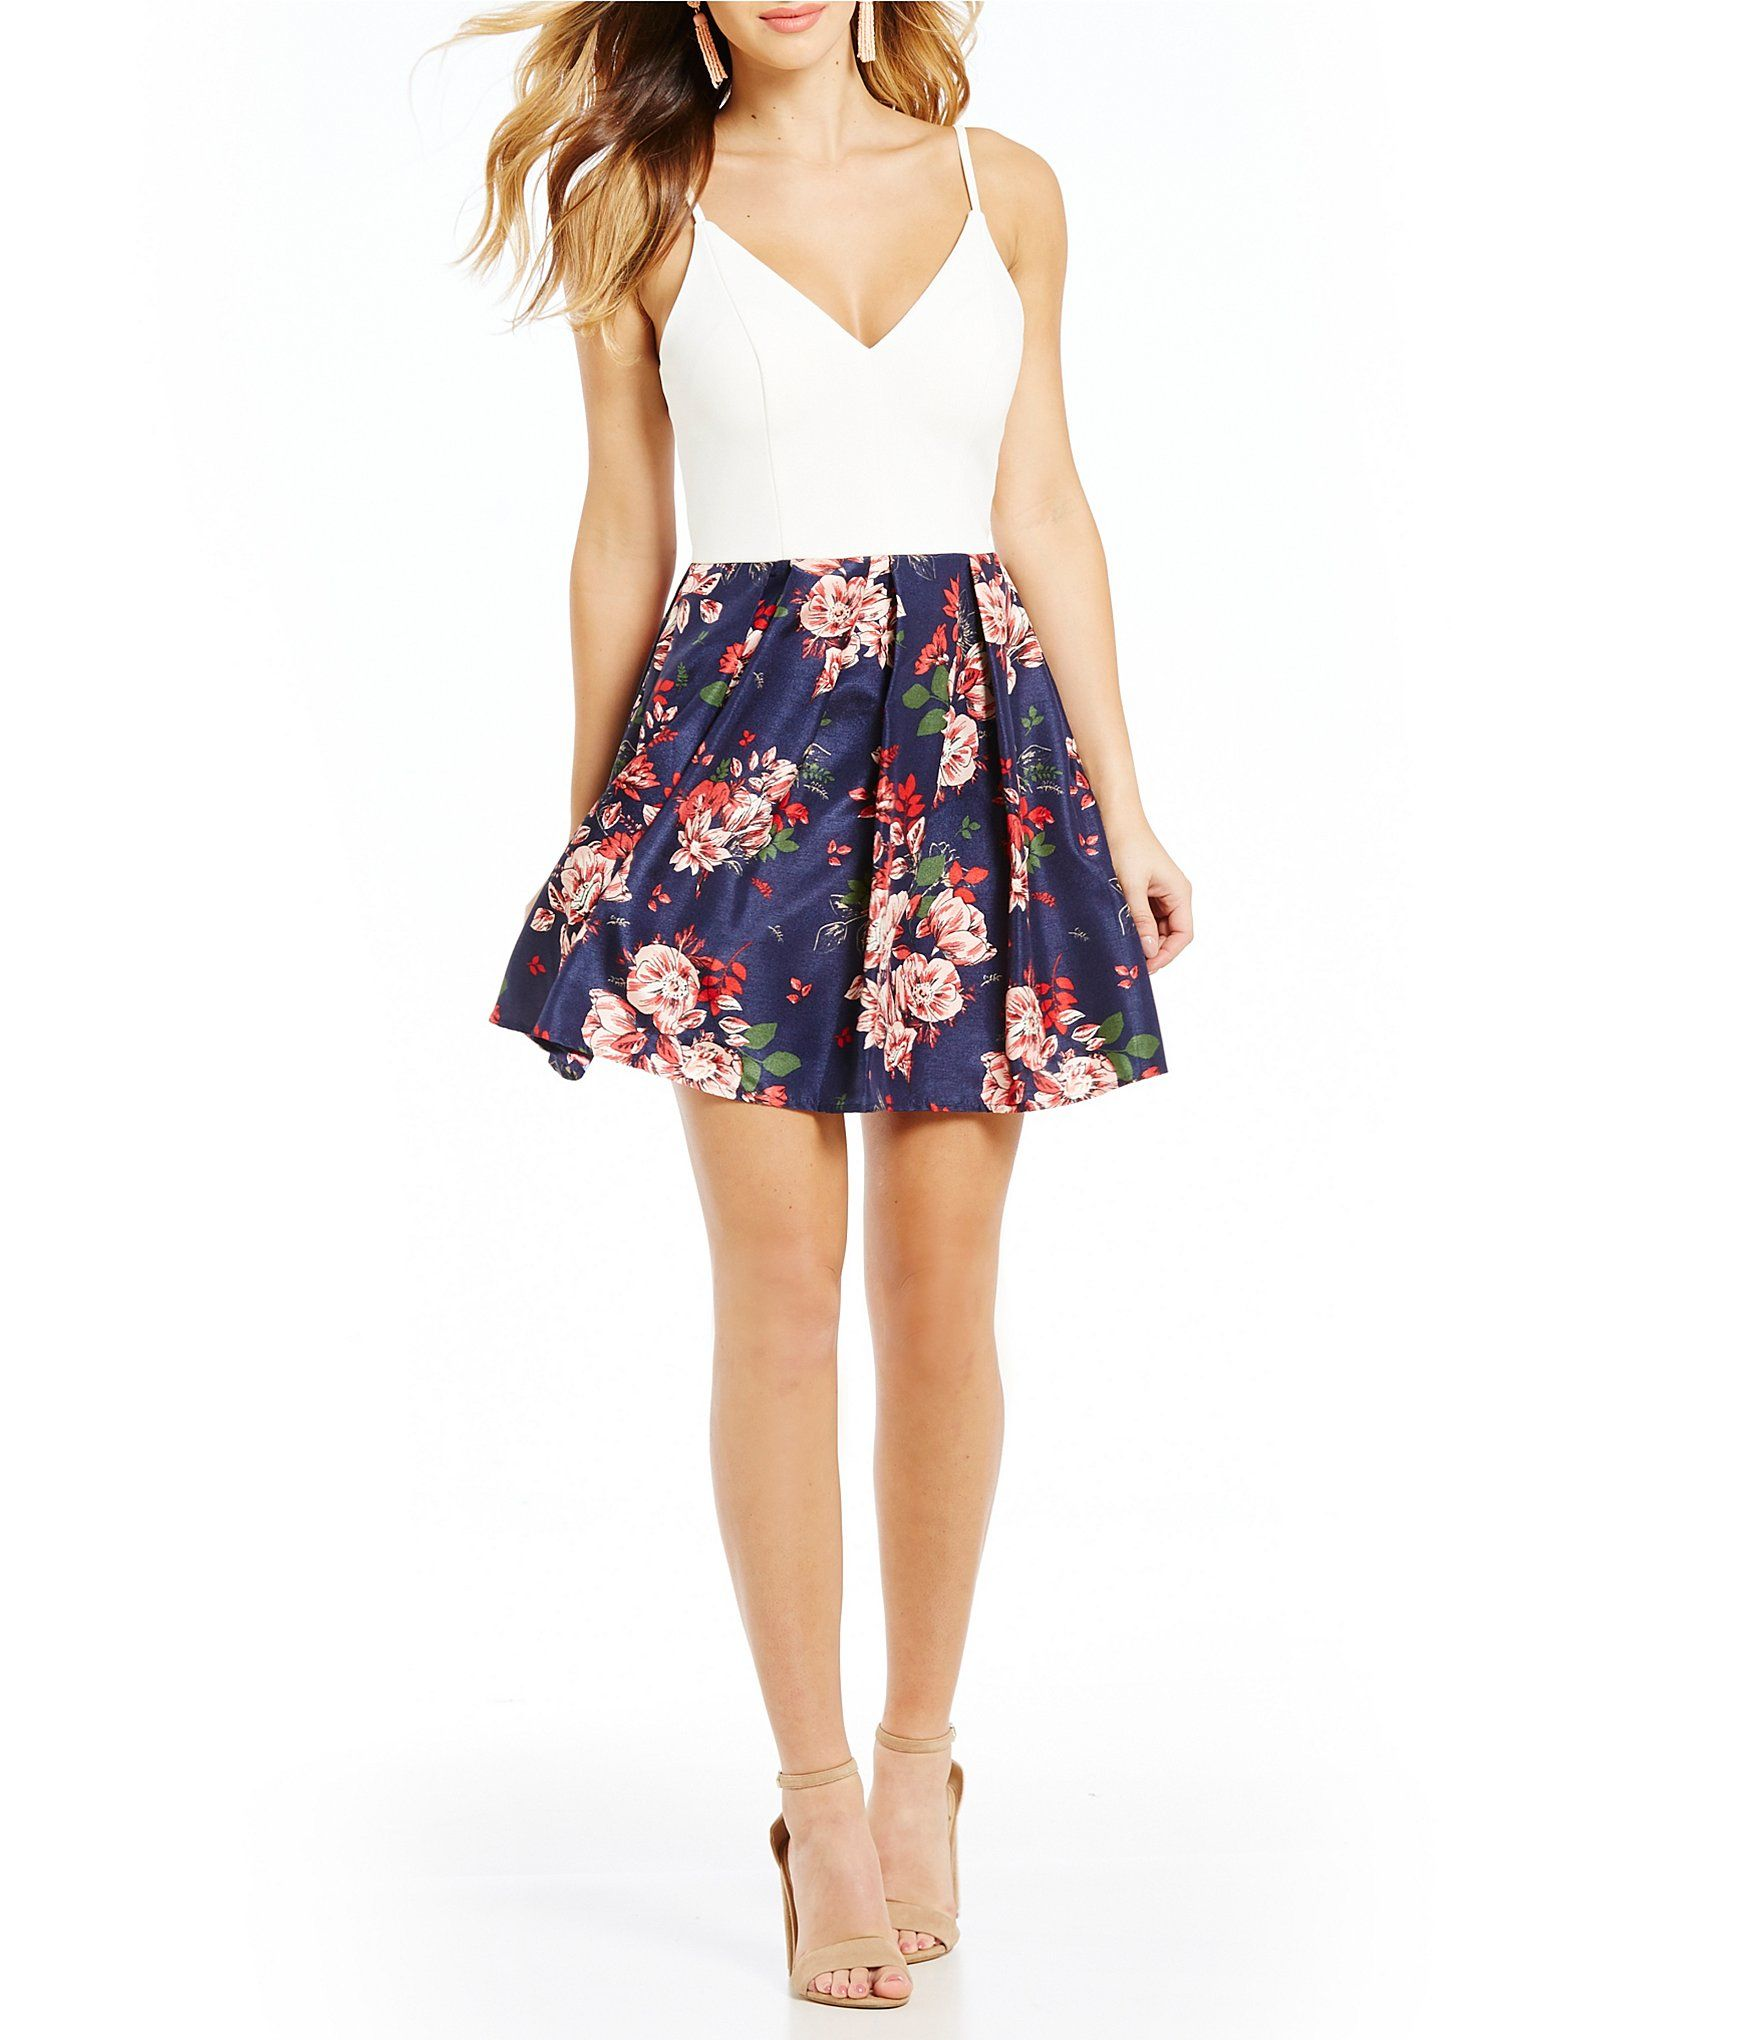 fdcdc6ad7cd Shop for Teeze Me Spaghetti Strap Floral Print Skirt Fit-and-Flare Dress at  Dillards.com. Visit Dillards.com to find clothing